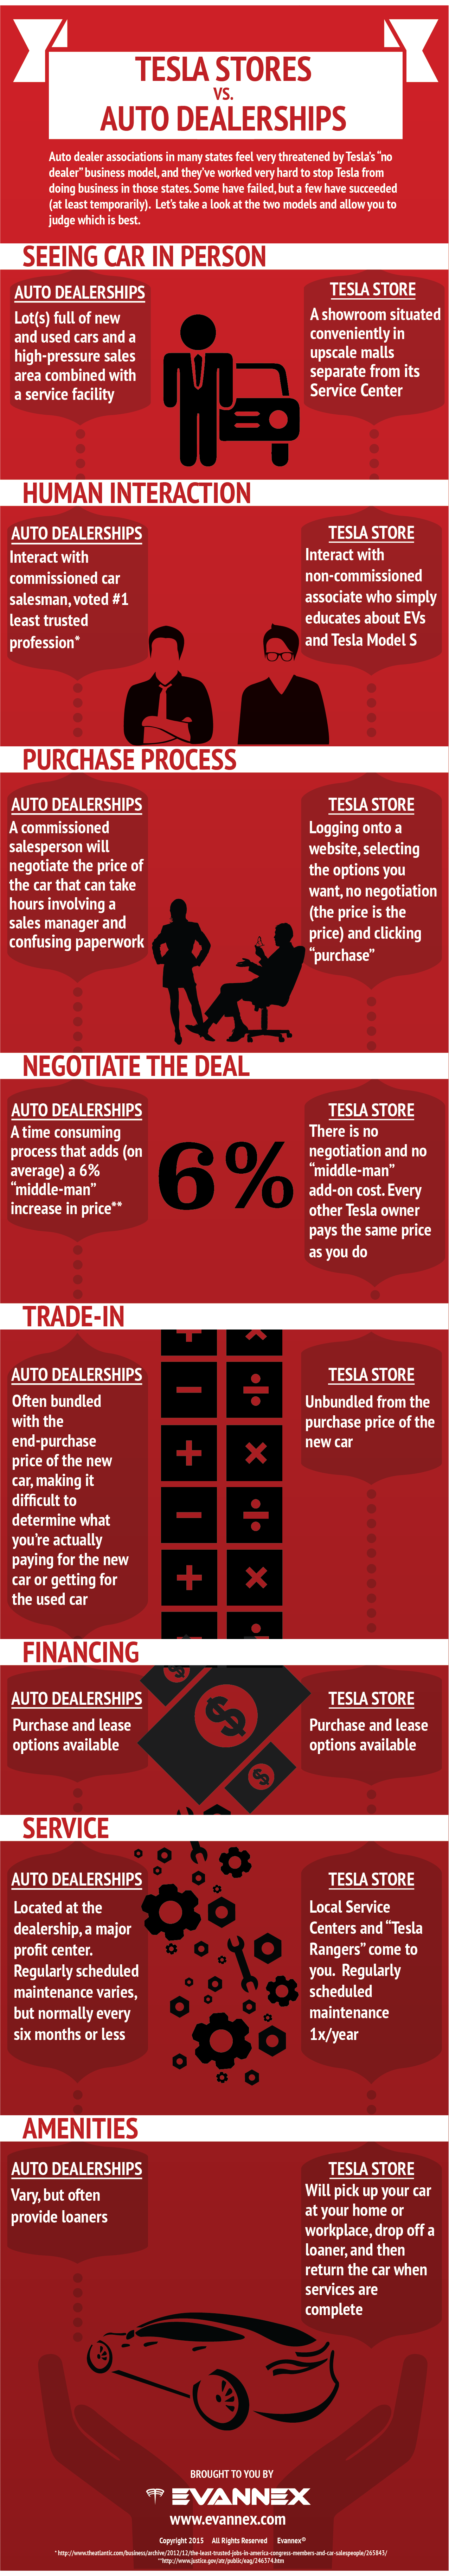 Tesla-Stores-vs-Auto-Dealerships